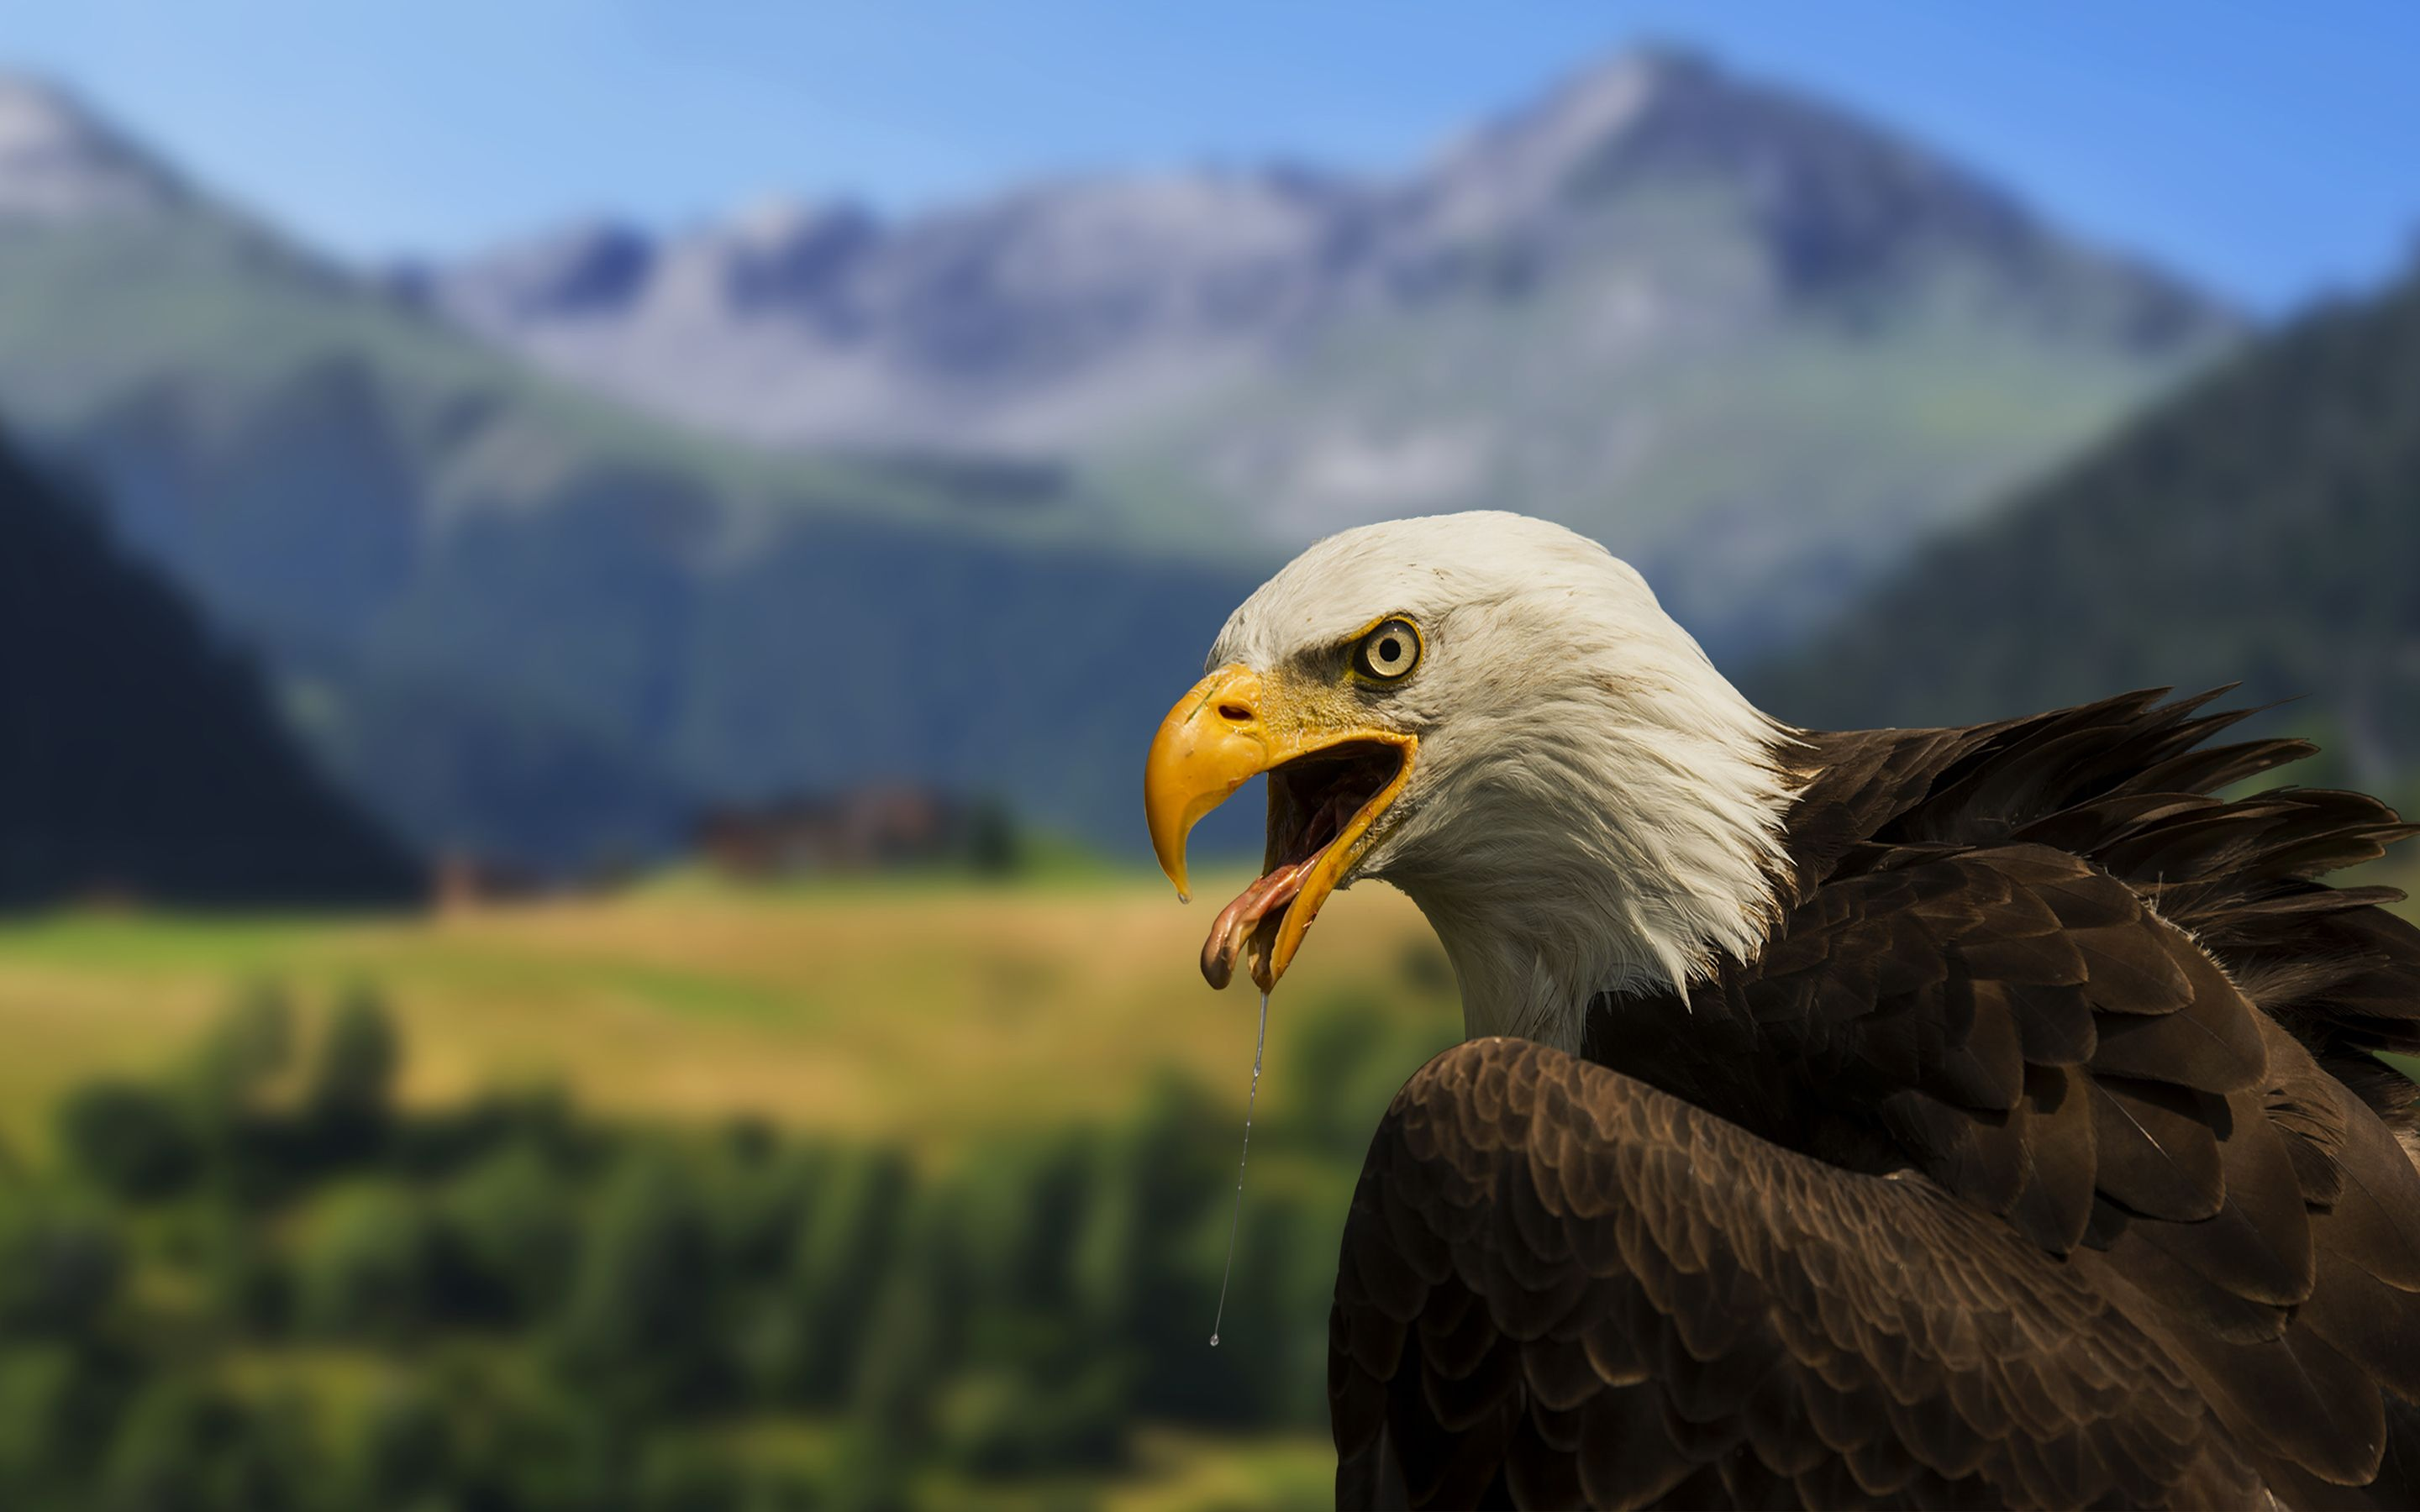 Bald eagle by robin kamp animals birds wallpapers animals bald eagle by robin kamp animals birds wallpapers voltagebd Image collections